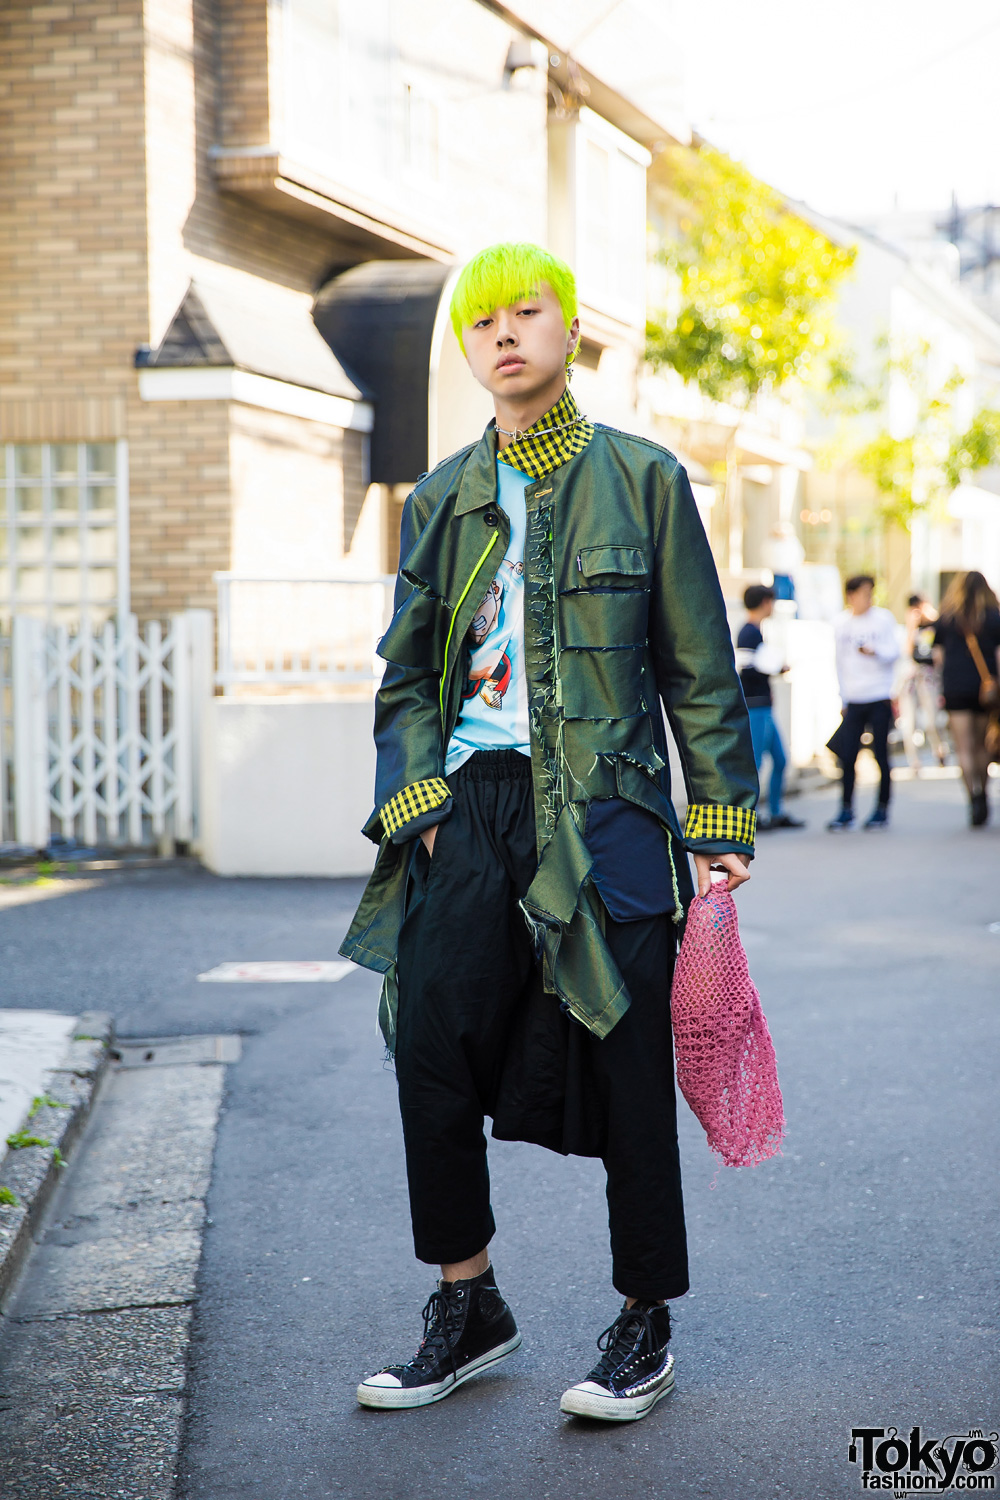 Neon-Haired Harajuku Guy In Edgy Street Style W/ PPFM